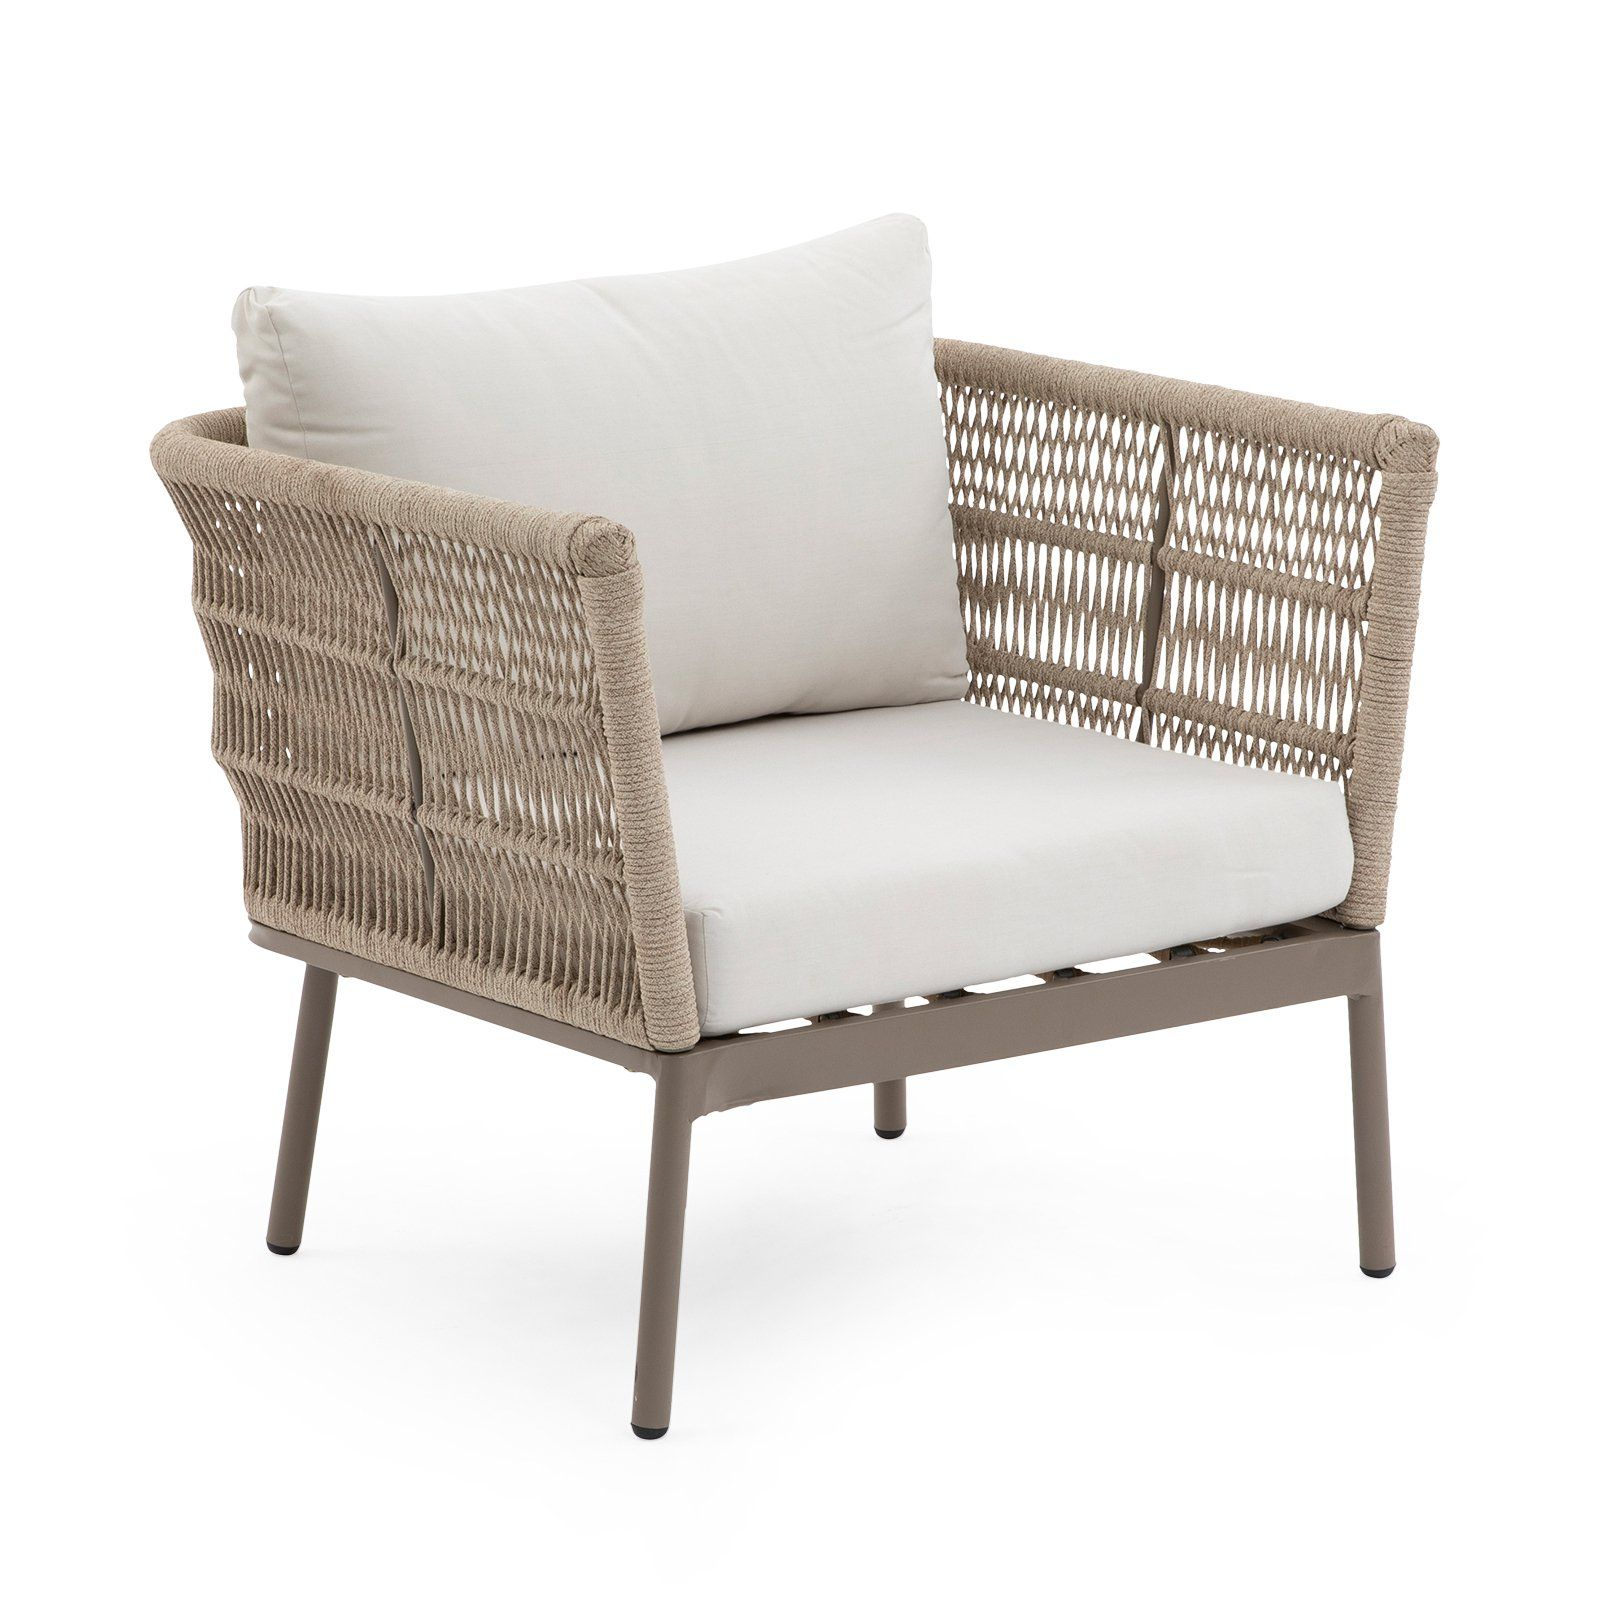 Excellent Belham Living Wicklow Rope Weave Outdoor Deep Seating Chair Bralicious Painted Fabric Chair Ideas Braliciousco